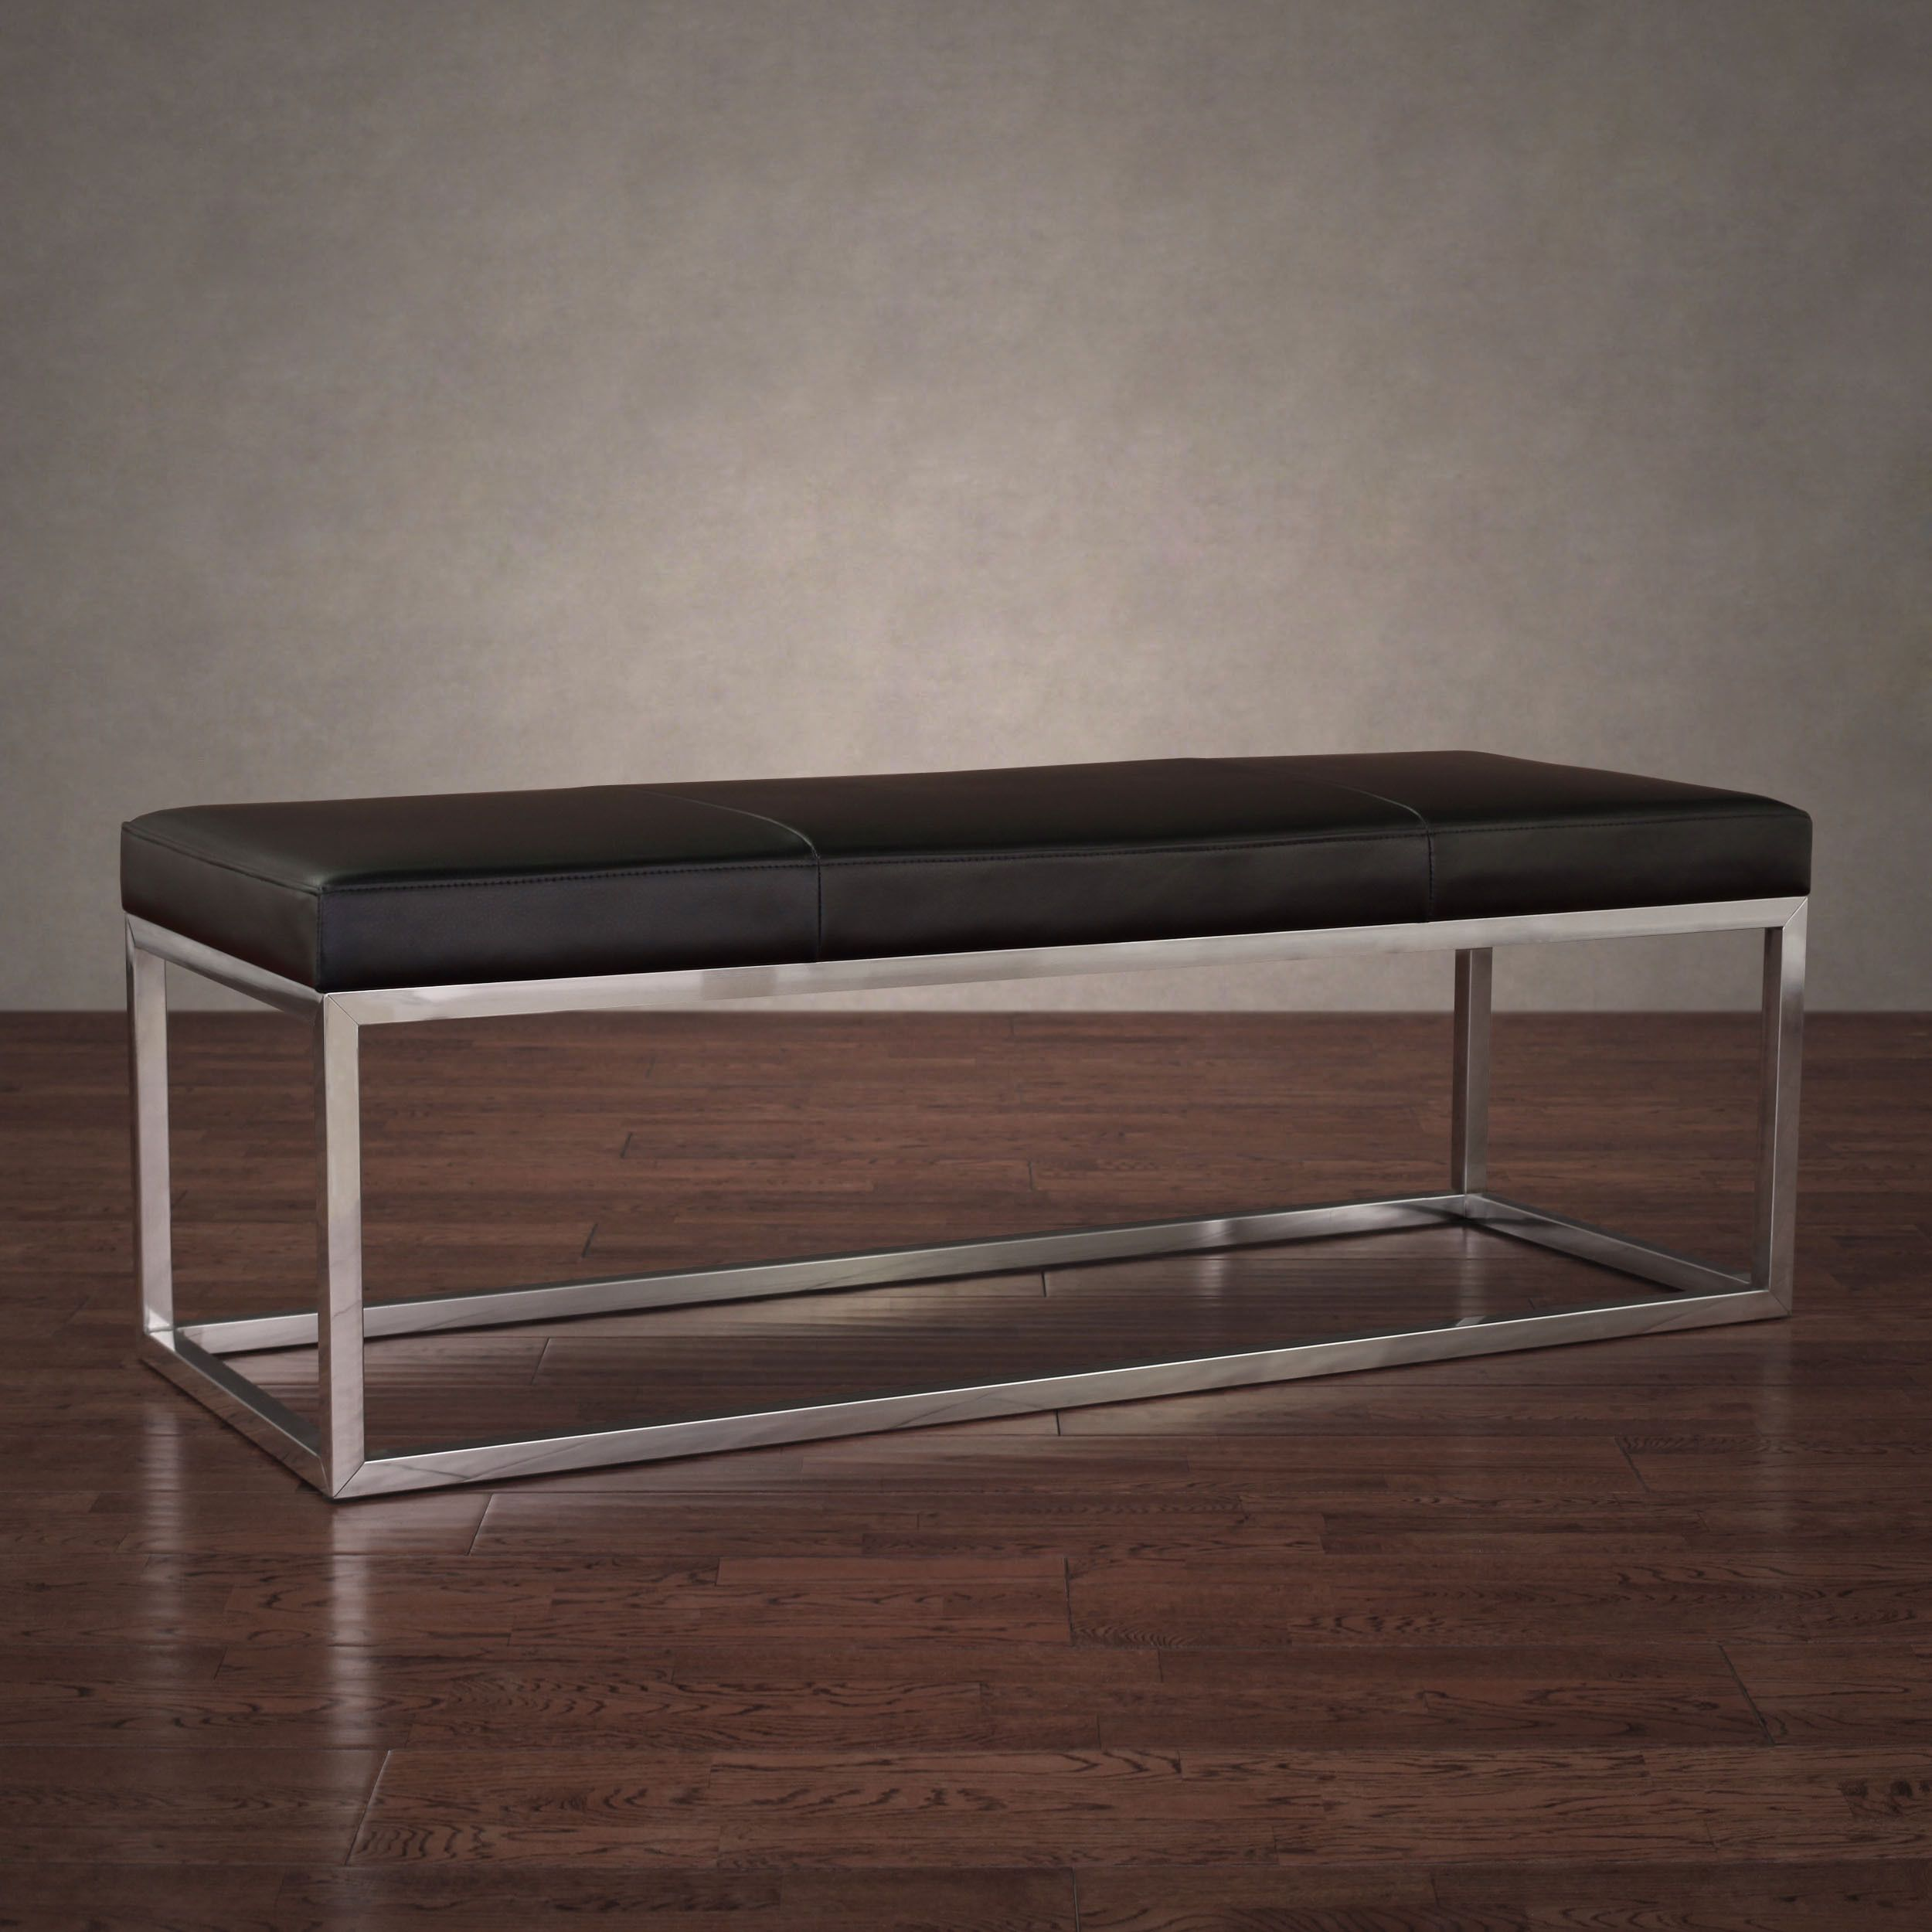 Cool This Trendy Bench Features A Stainless Steel Frame Gmtry Best Dining Table And Chair Ideas Images Gmtryco